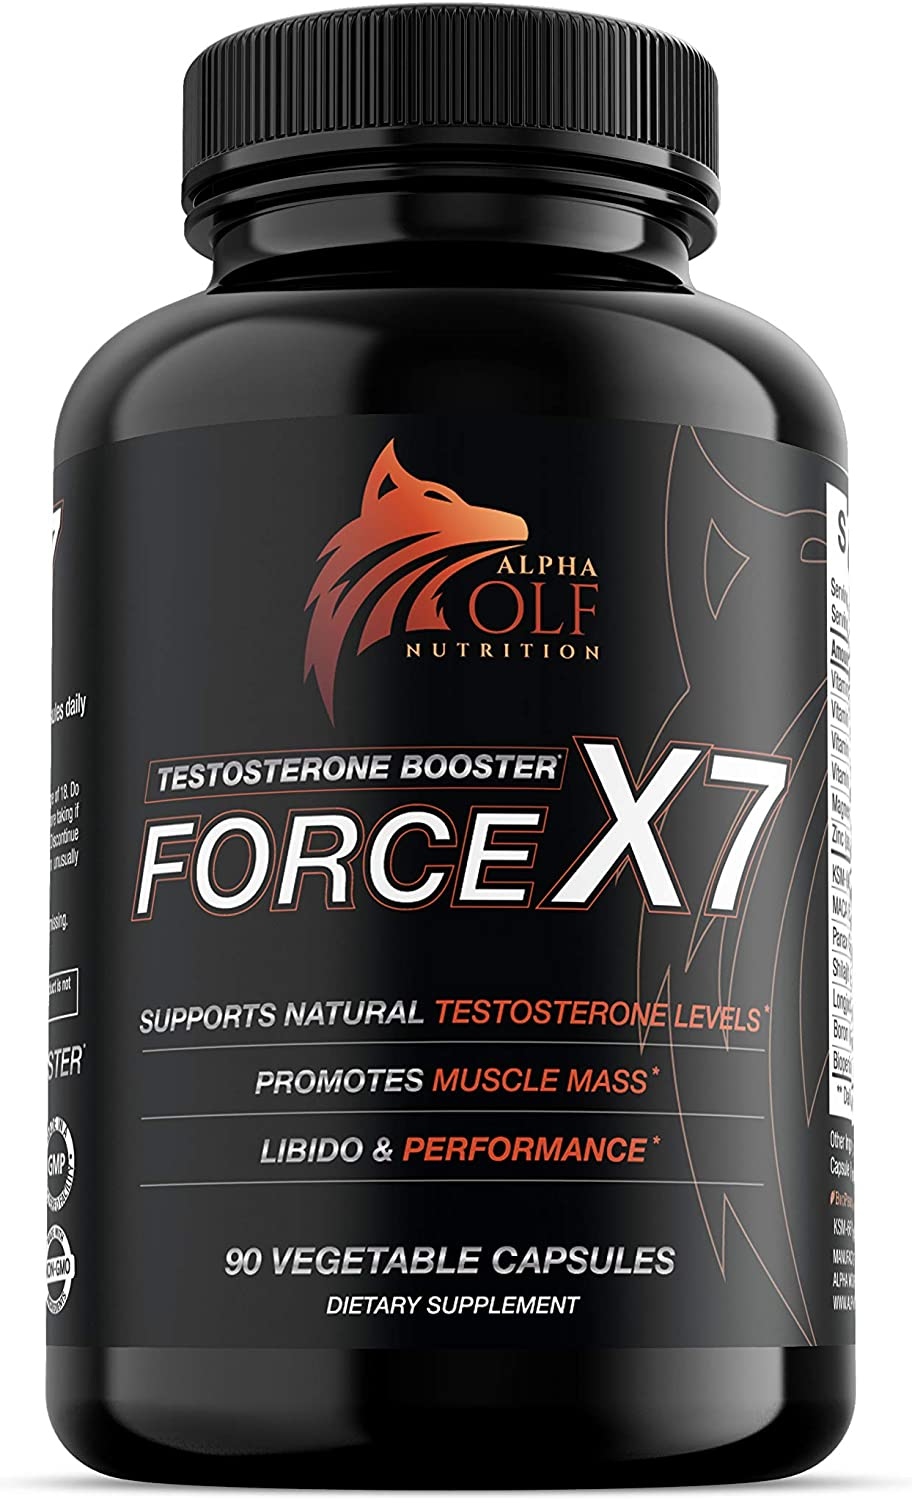 Force X7 - Natural Testosterone Booster for Men Libido Support Muscle eBay